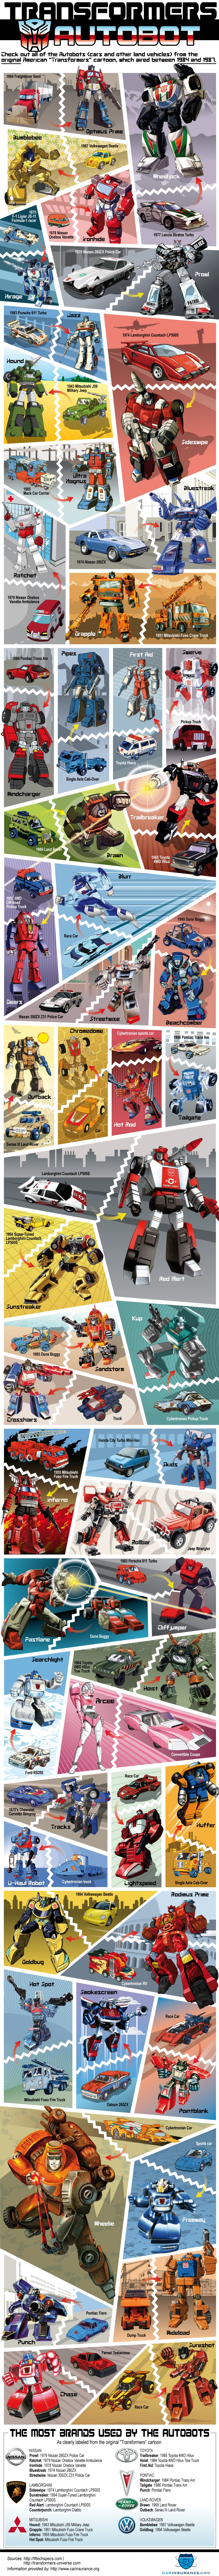 TransformersAutobots - Kinda interesting and cool but kinda cheesy...makes me want to do this over and draw the pictures myself so they are correct...hmmmm